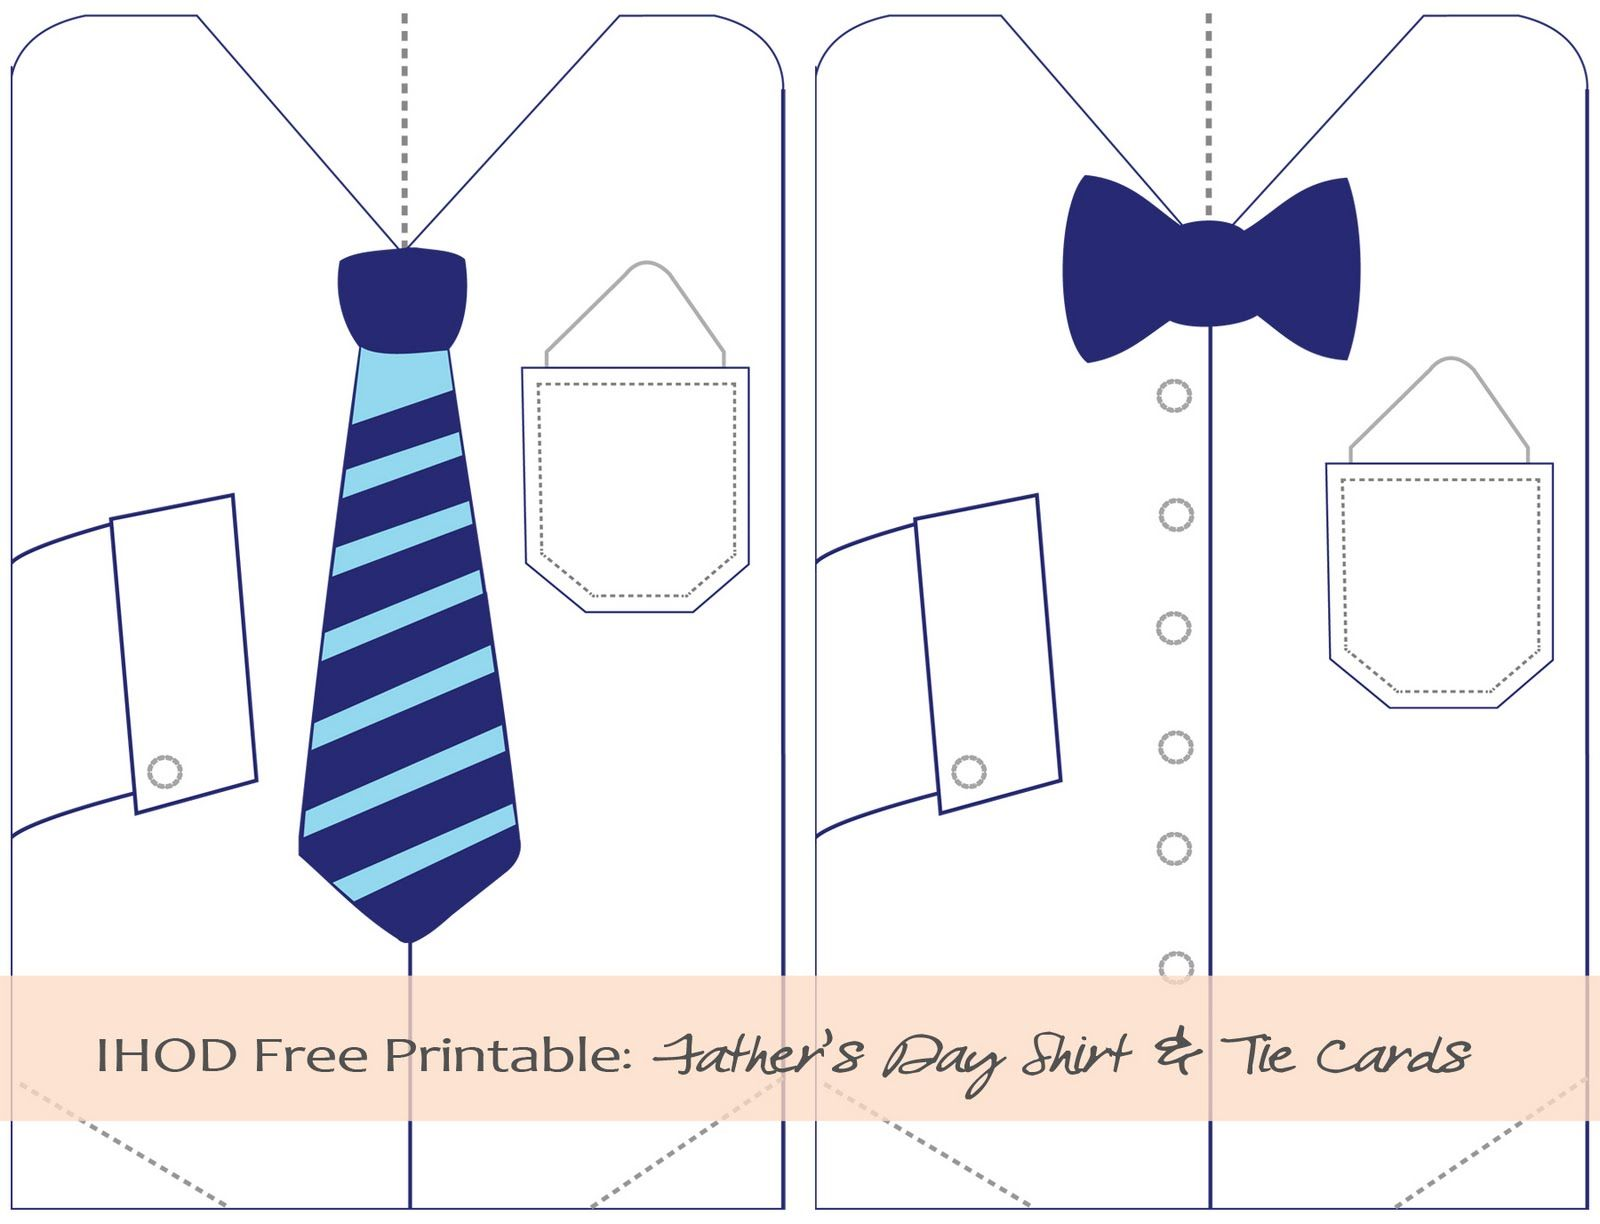 photo regarding Printable Shirts named Do it yourself: Cost-free Printable Fathers Working day Blouse Tie Card Youngsters